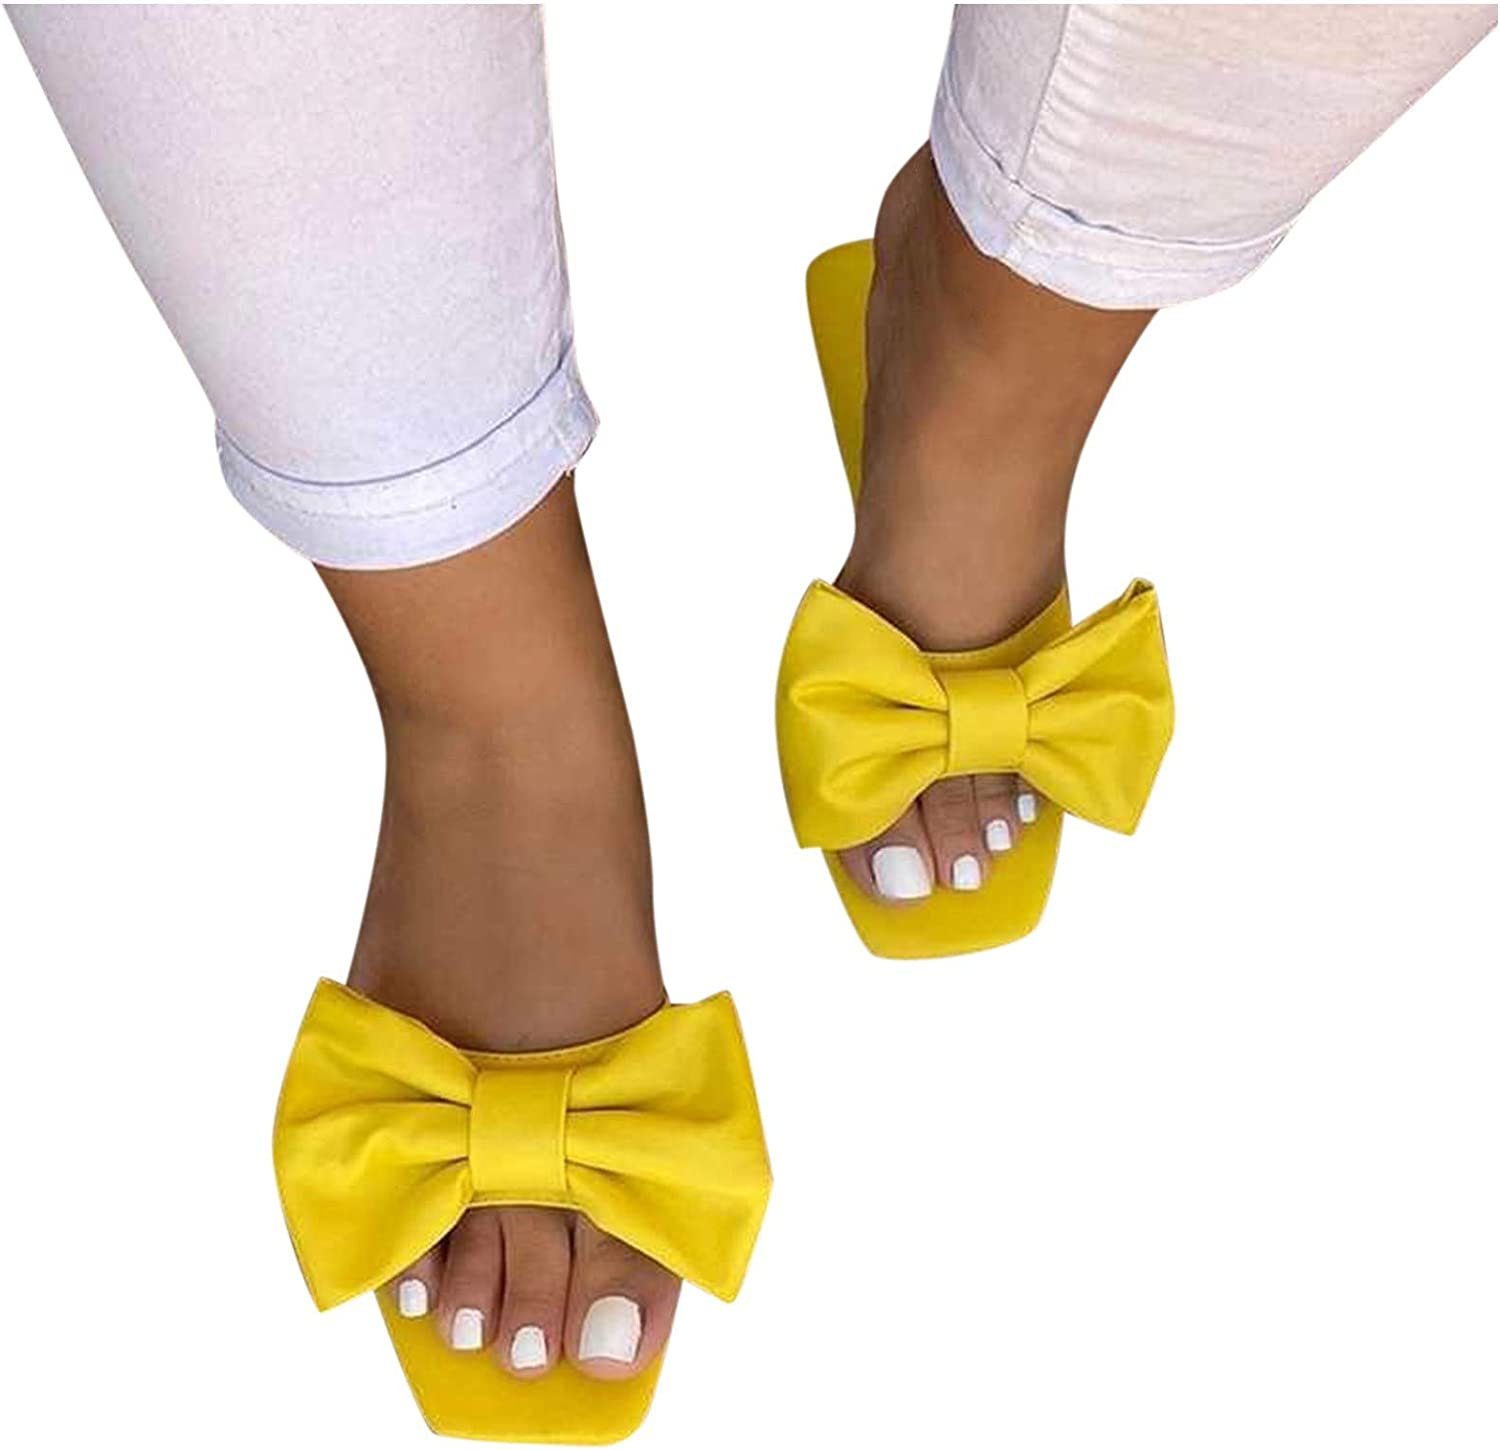 Xudanell Womens Max 65% OFF Sandals Square Toe Slides Slip Flat Special sale item Bow Flatform